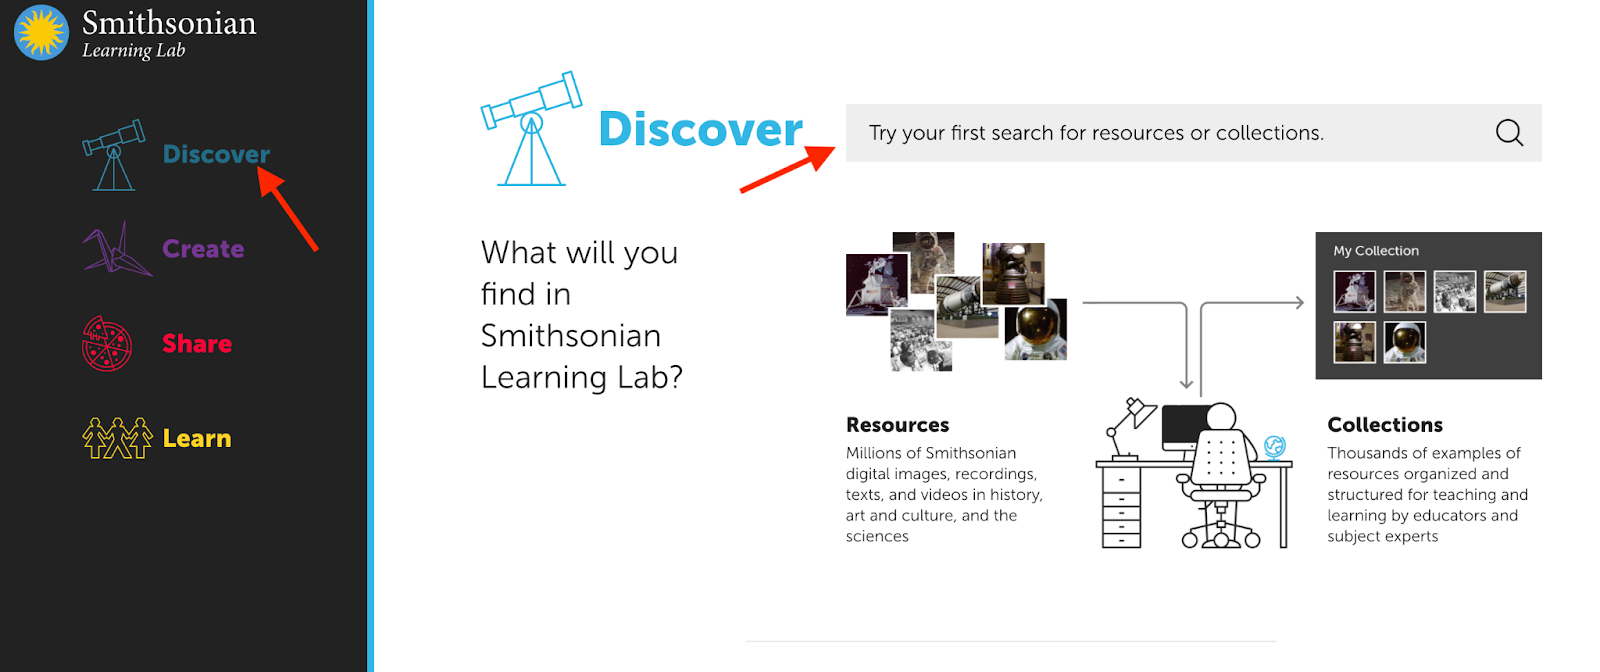 Image of the Discover Screen with an arrow pointing at the search field.